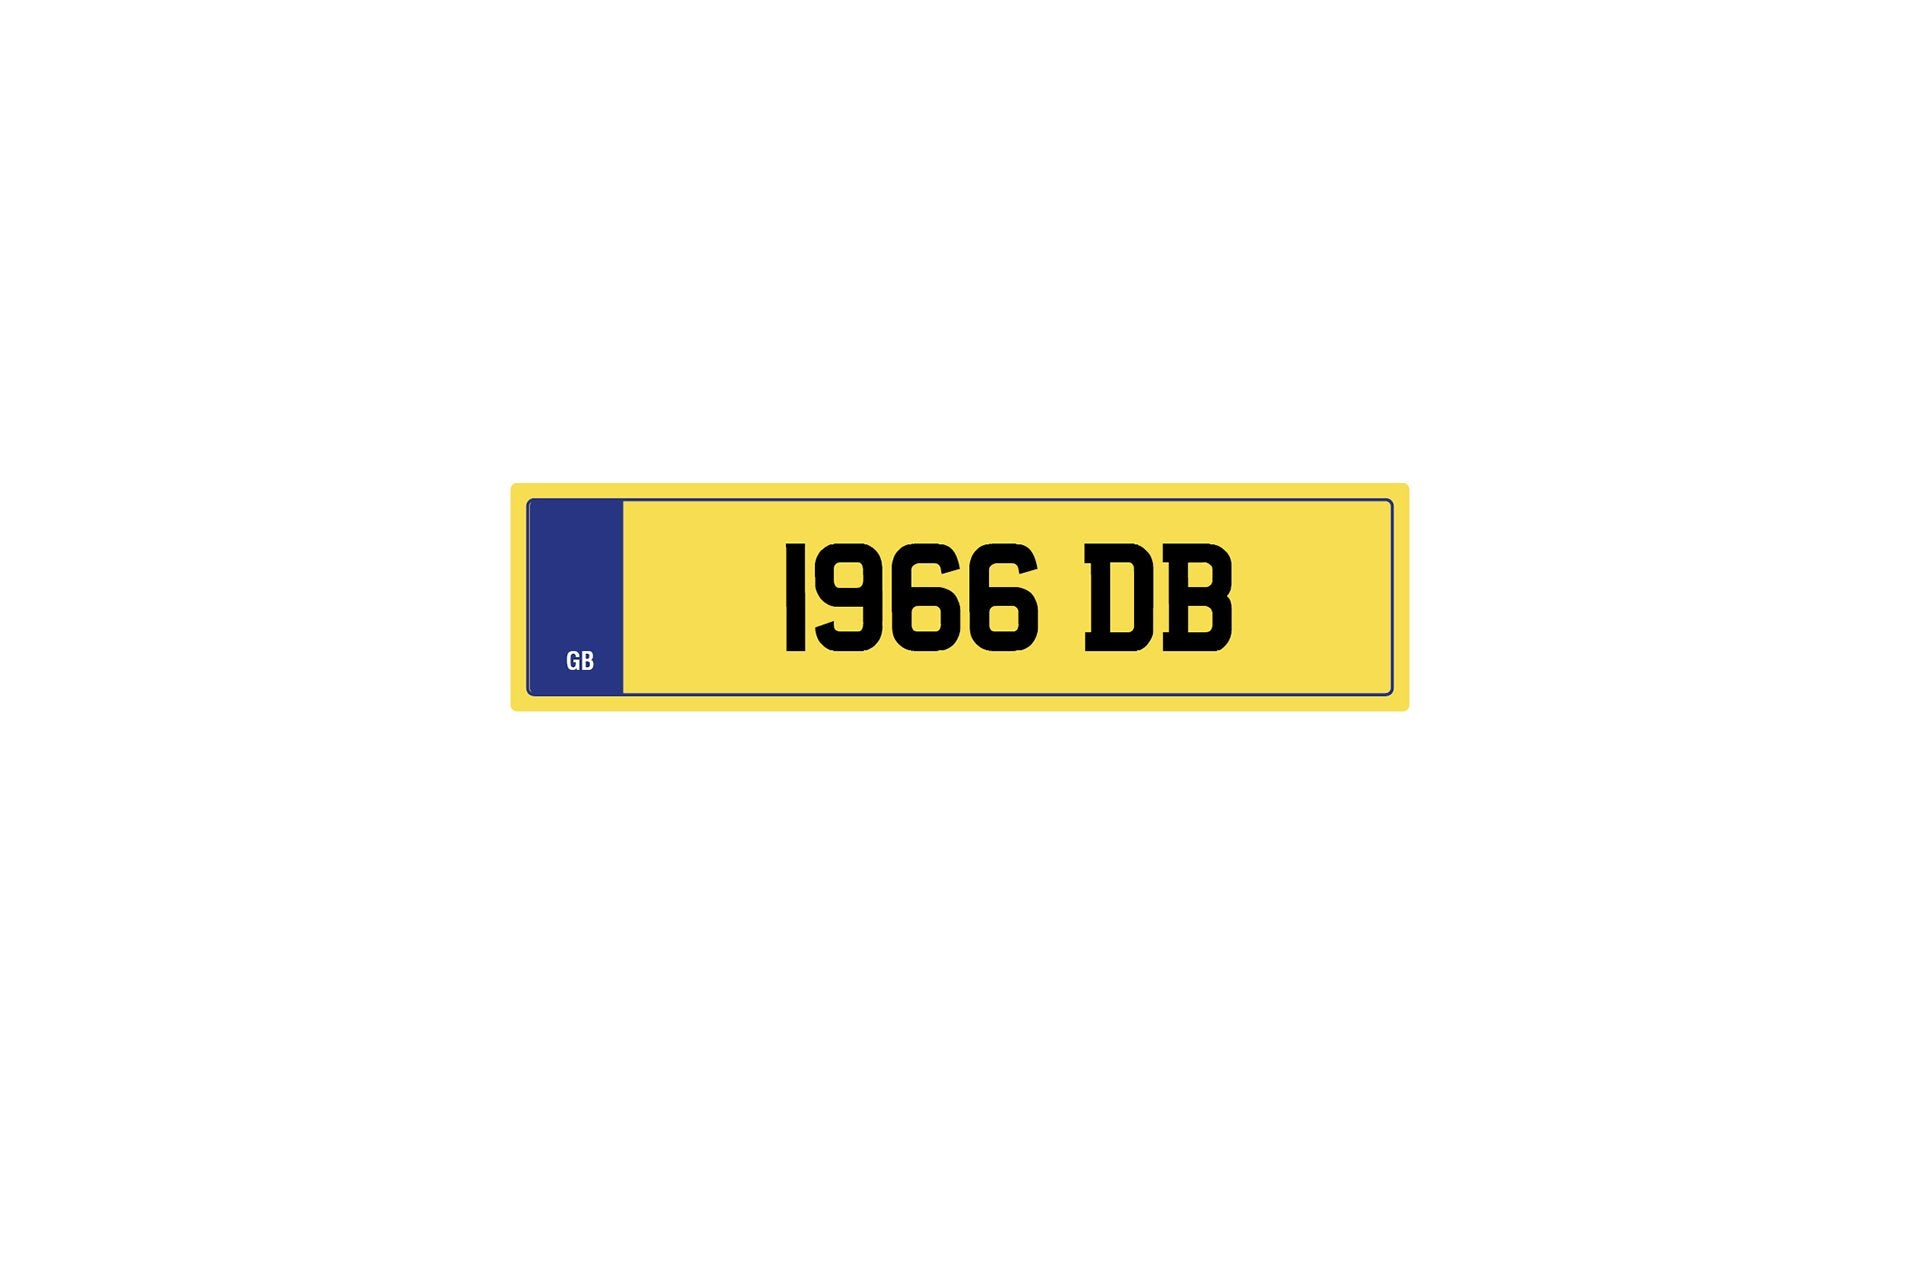 Private Plate 1966 Db by Kahn - Image 259